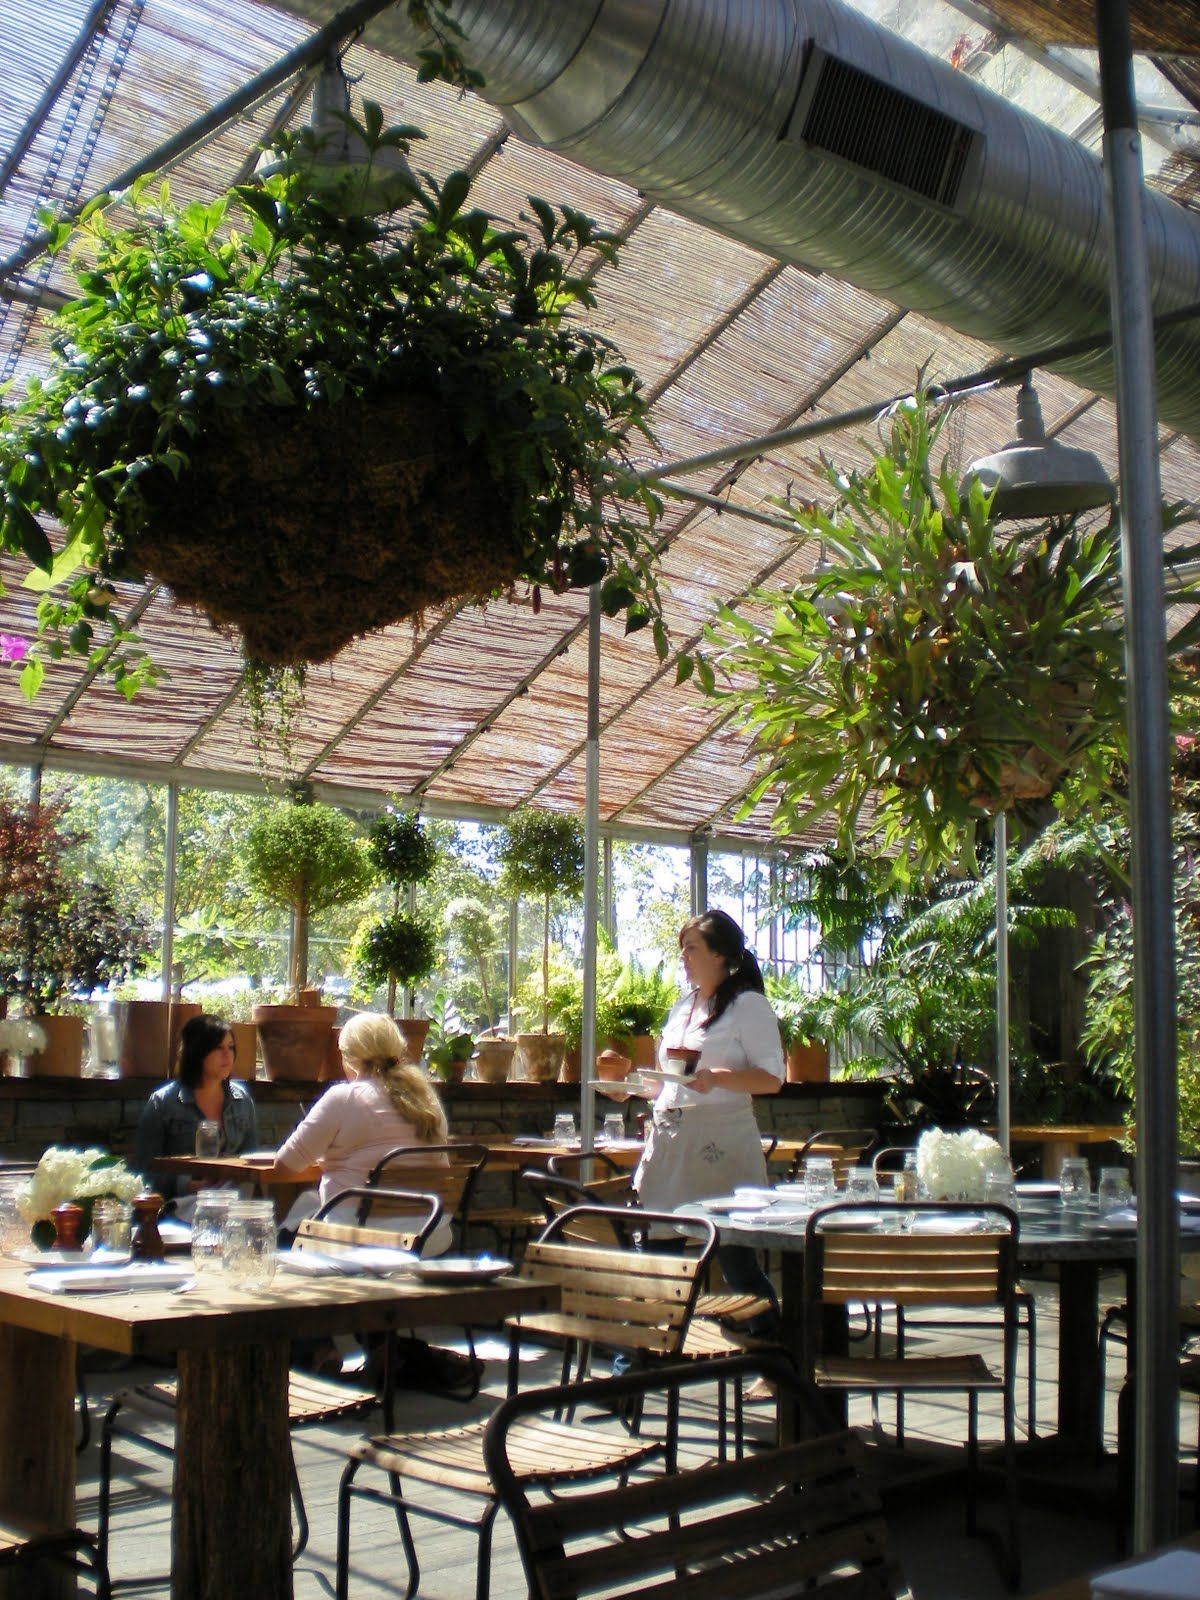 Styer\'s Garden Cafe | ROOF TOPS smokers and grills | Pinterest ...